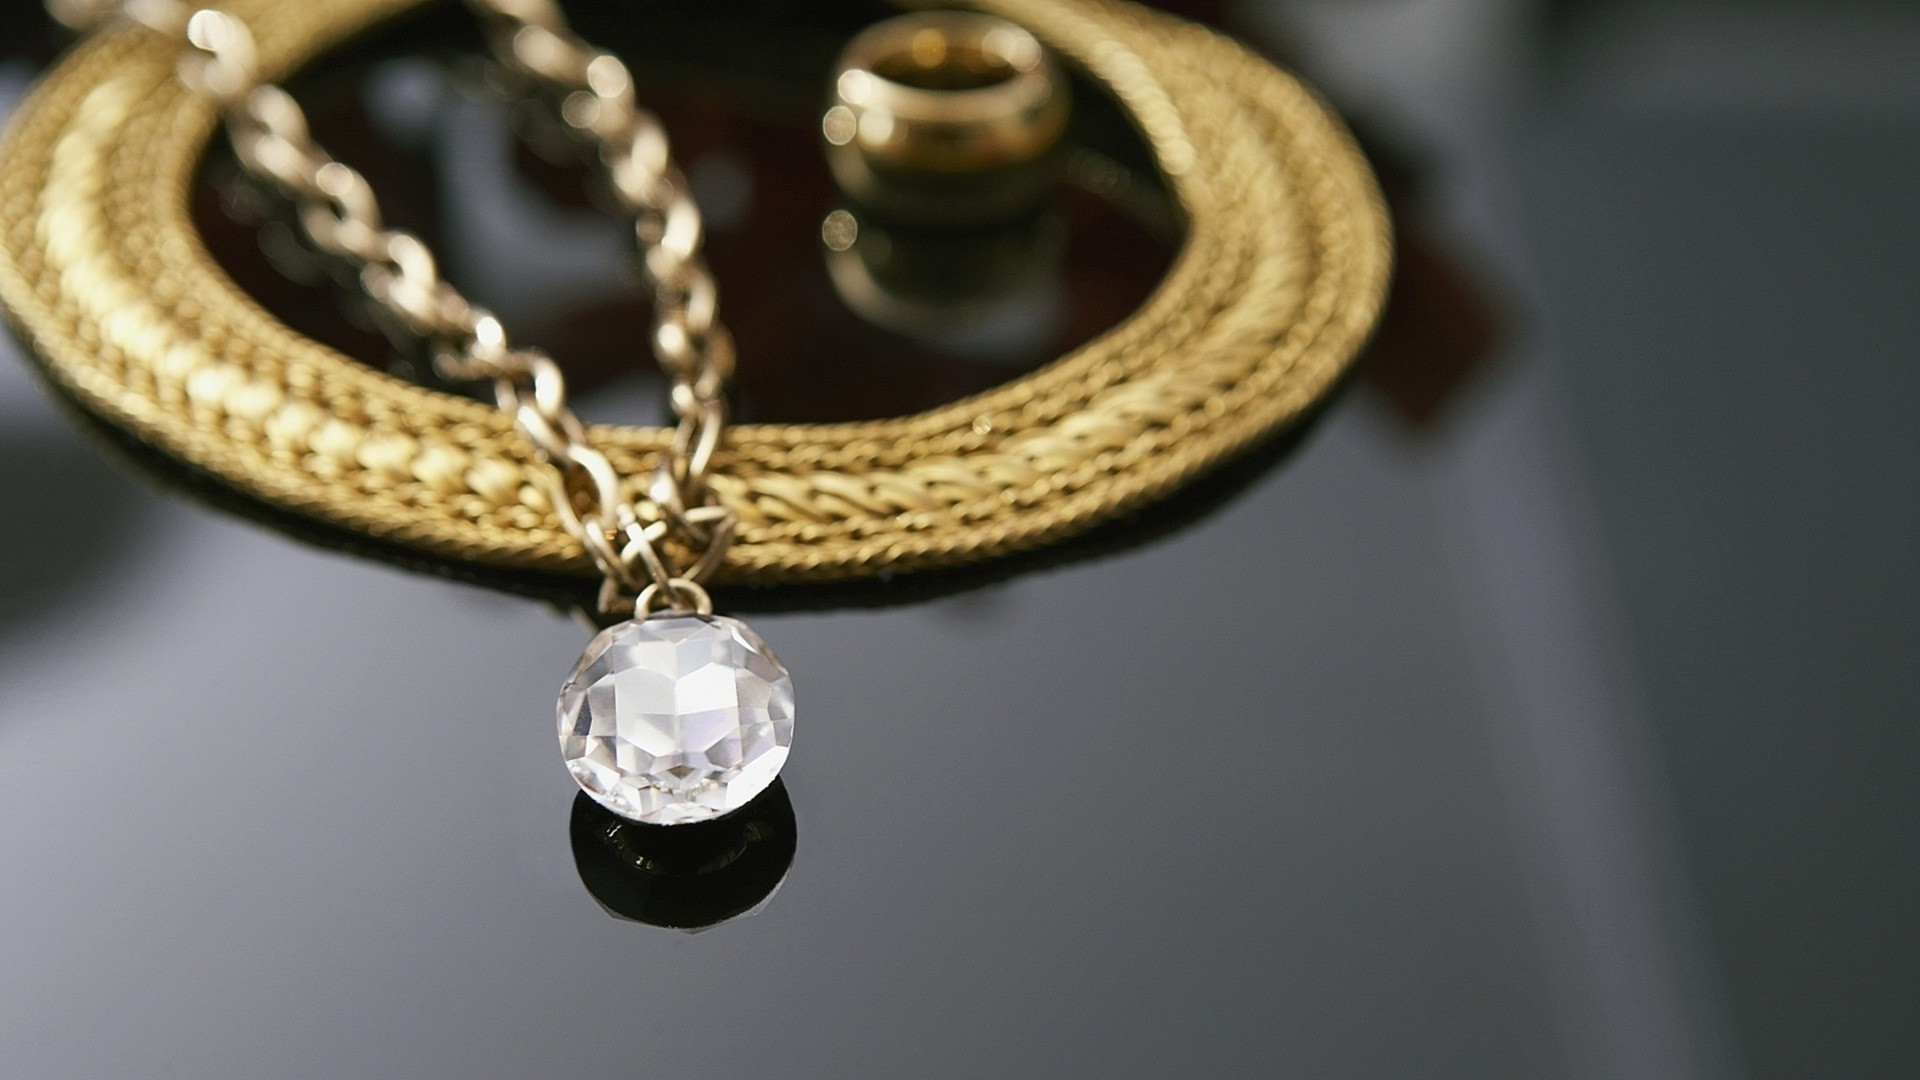 1920x1080, Gold And Diamond Necklaces Set Jewellery - Gold Necklace Background Images Hd - HD Wallpaper